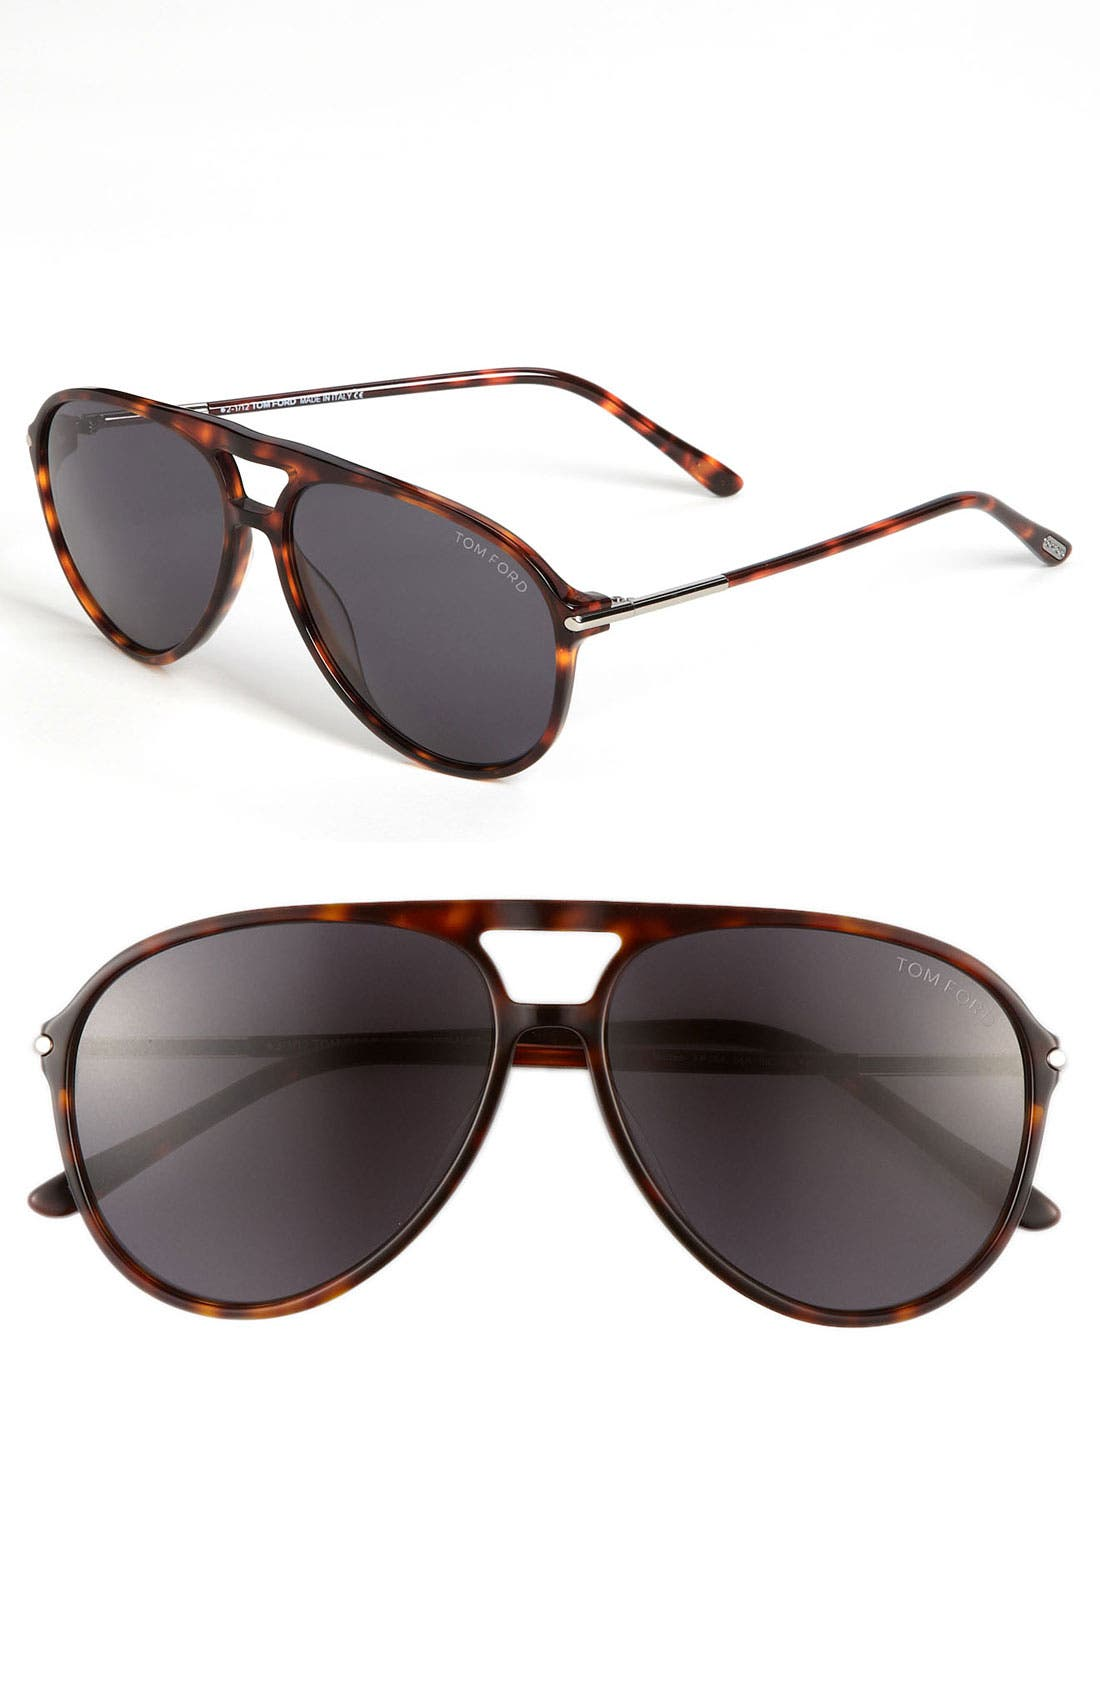 Alternate Image 1 Selected - Tom Ford 59mm Aviator Sunglasses